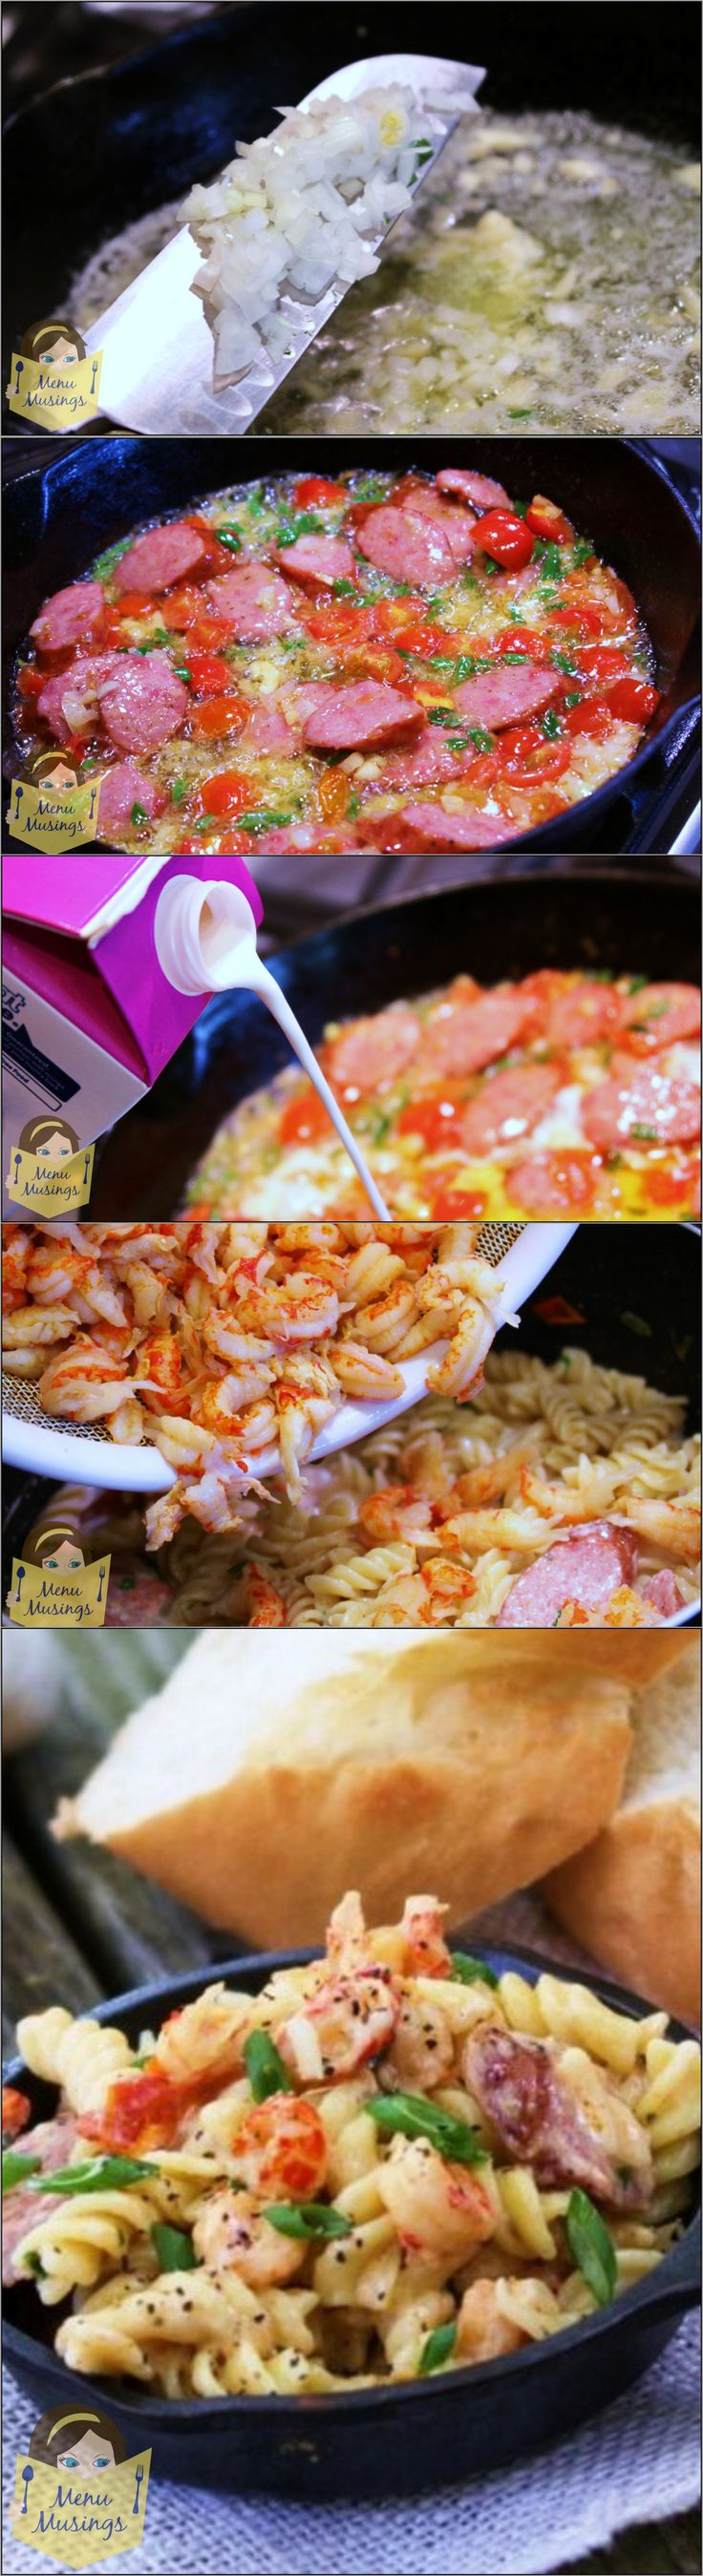 "Crawfish Monica - our favorite dish from the New Orleans Jazz Fest in a step-by-step ""make at home"" version!  It's creamy, spicy as you want it to be, and way jazzy!  Sub chicken if you are allergic or adverse to seafood."